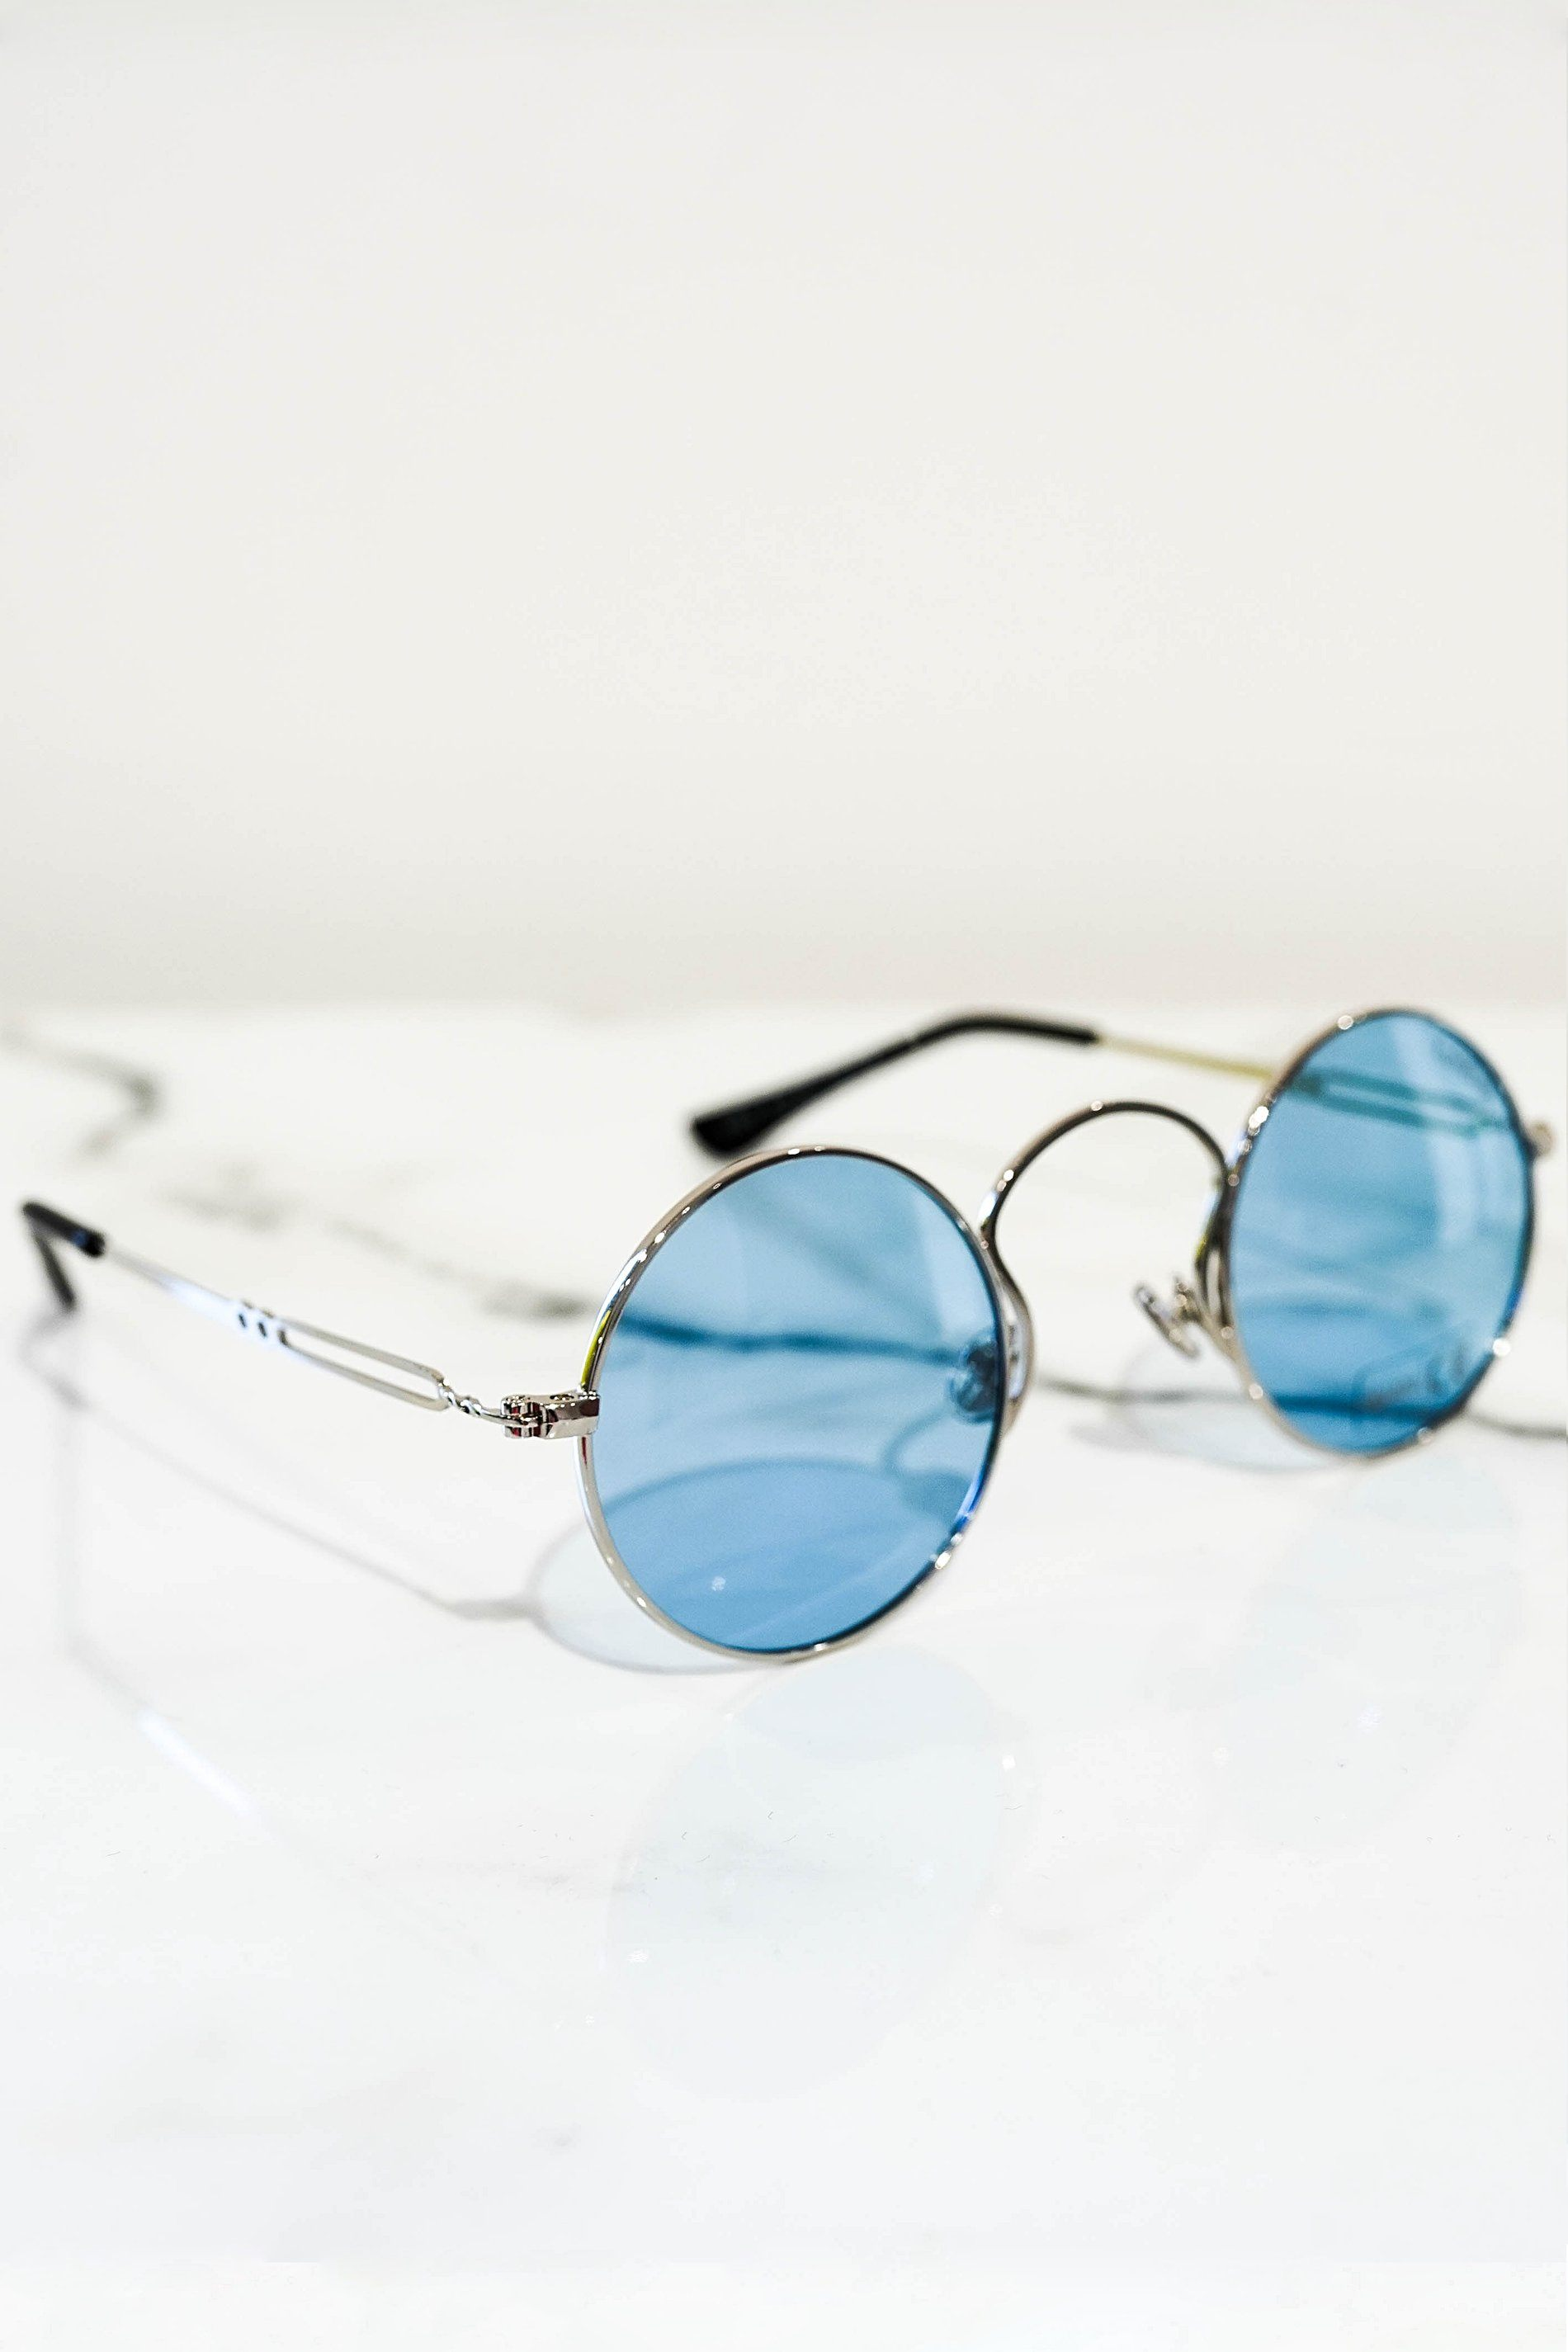 Retro sunglasses silver With blue lens